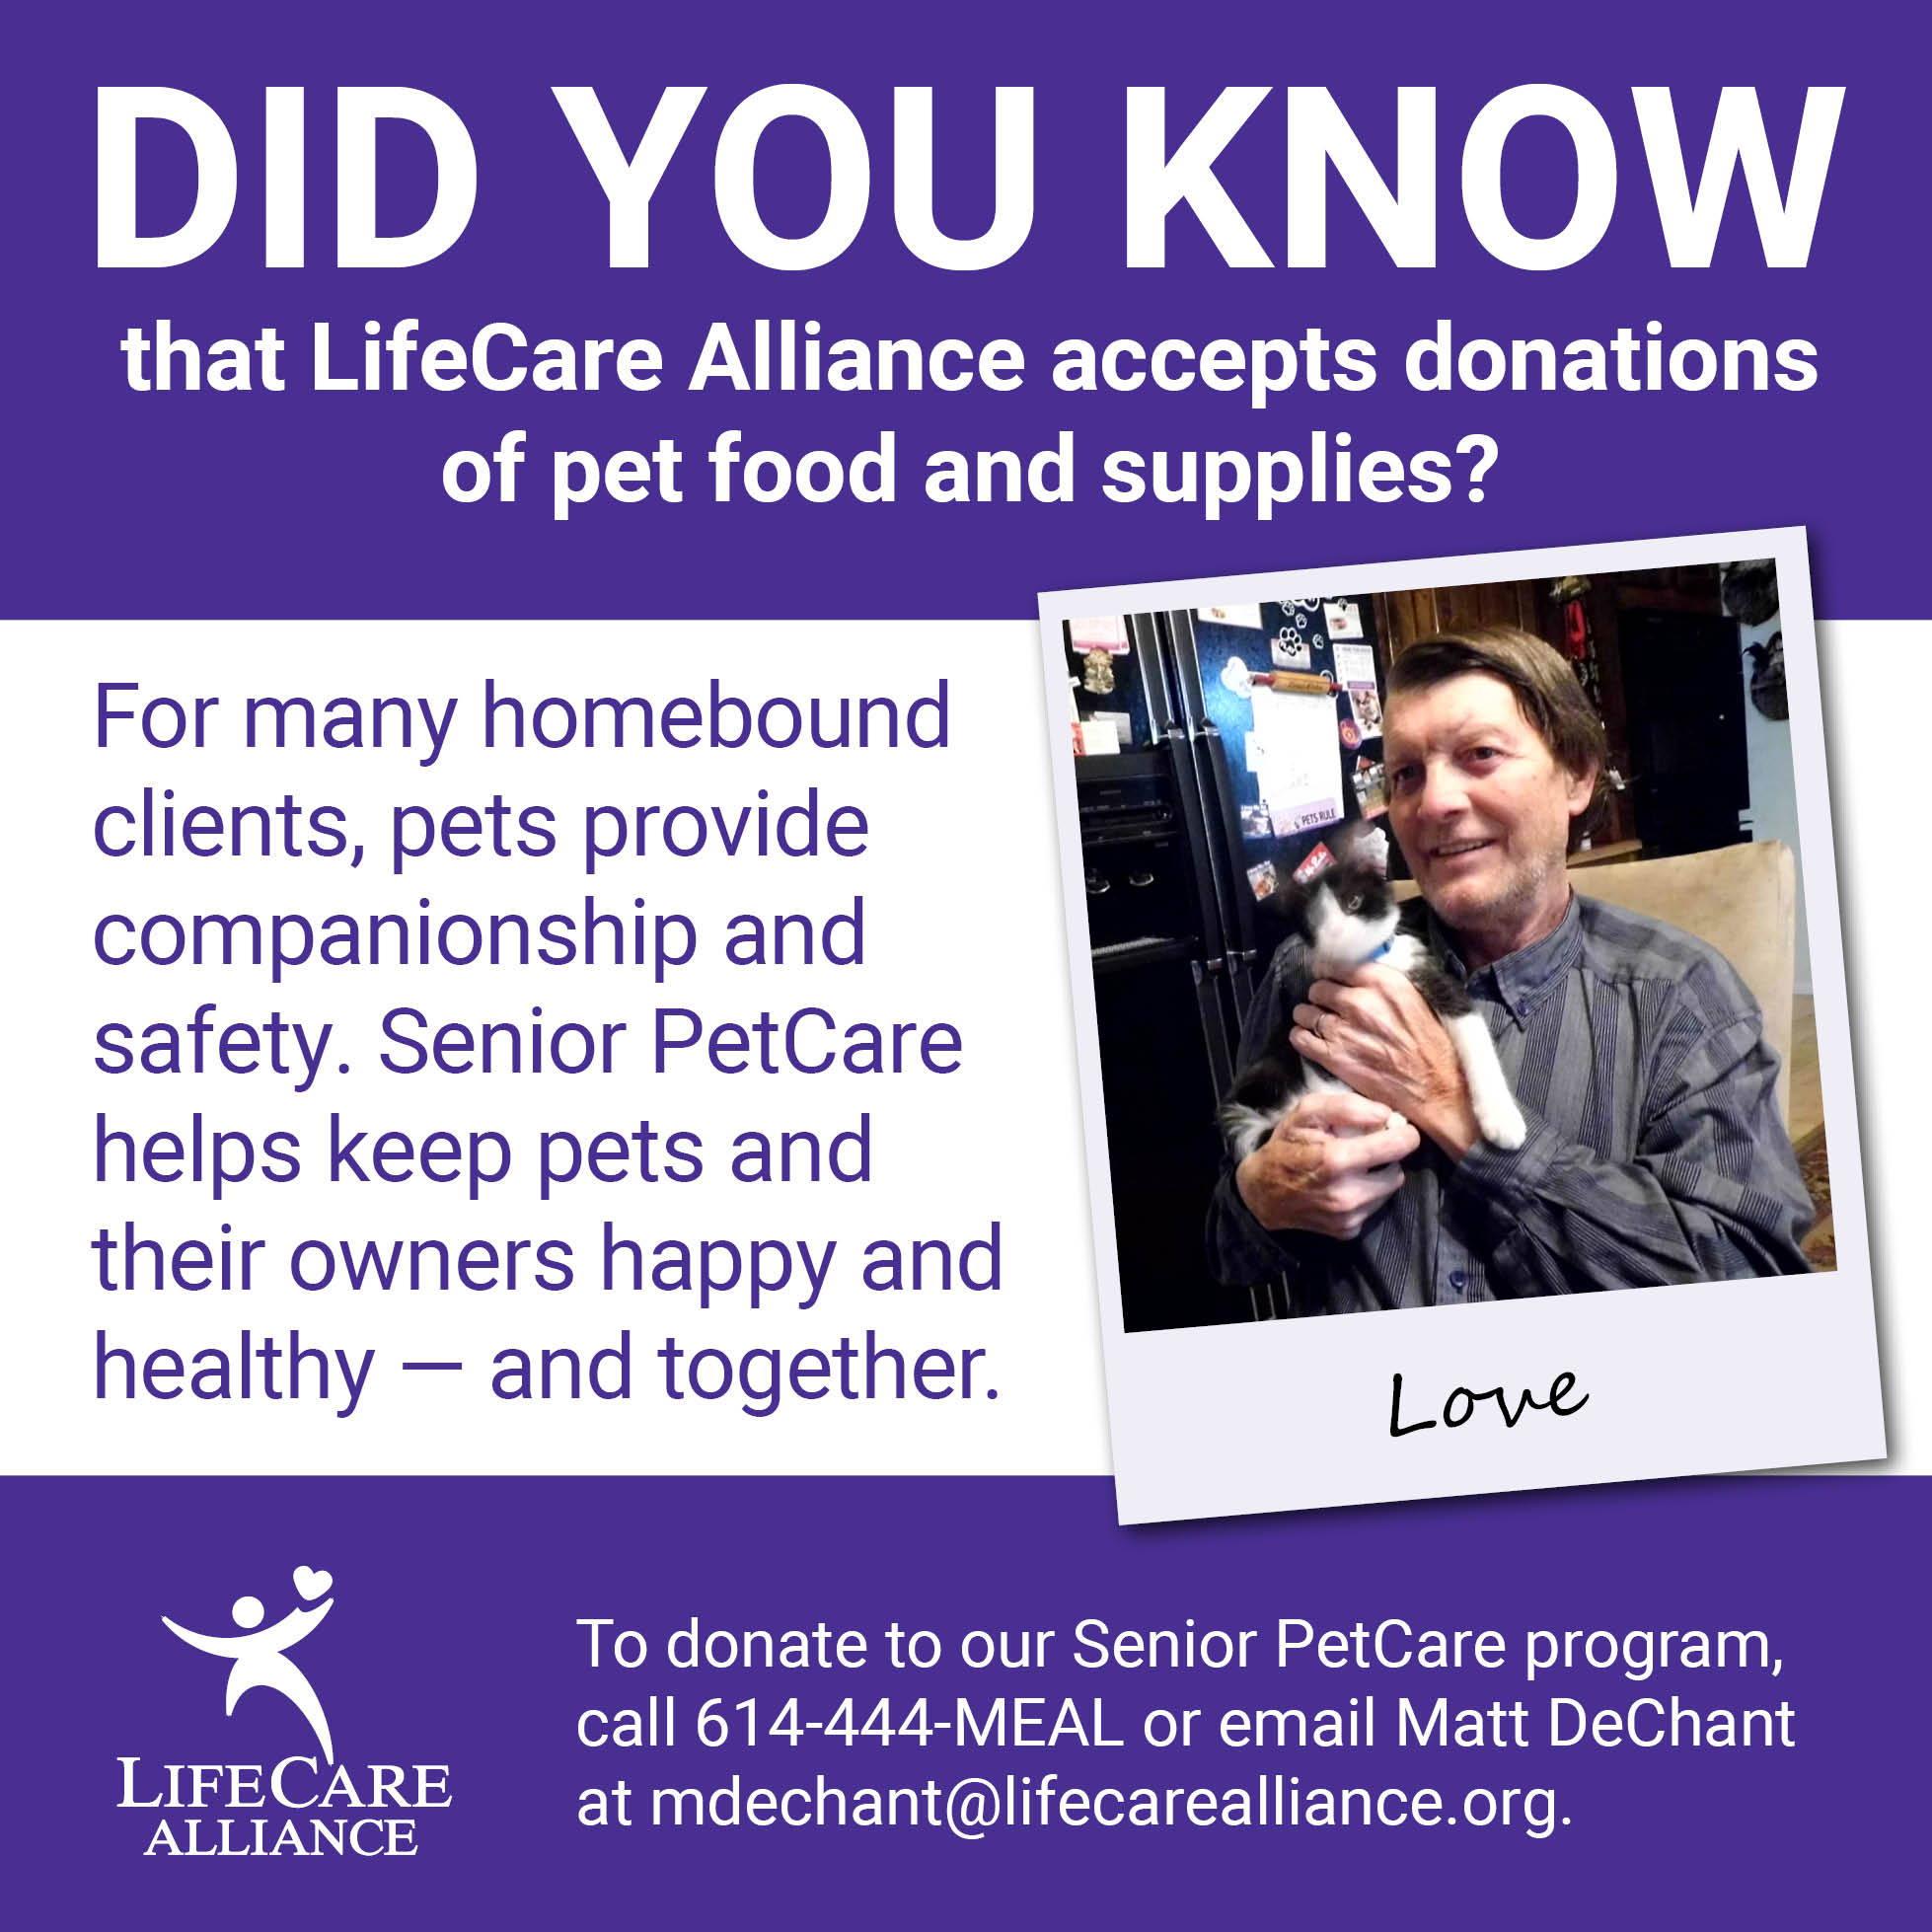 Senior PetCare helps keep animals and owners together.